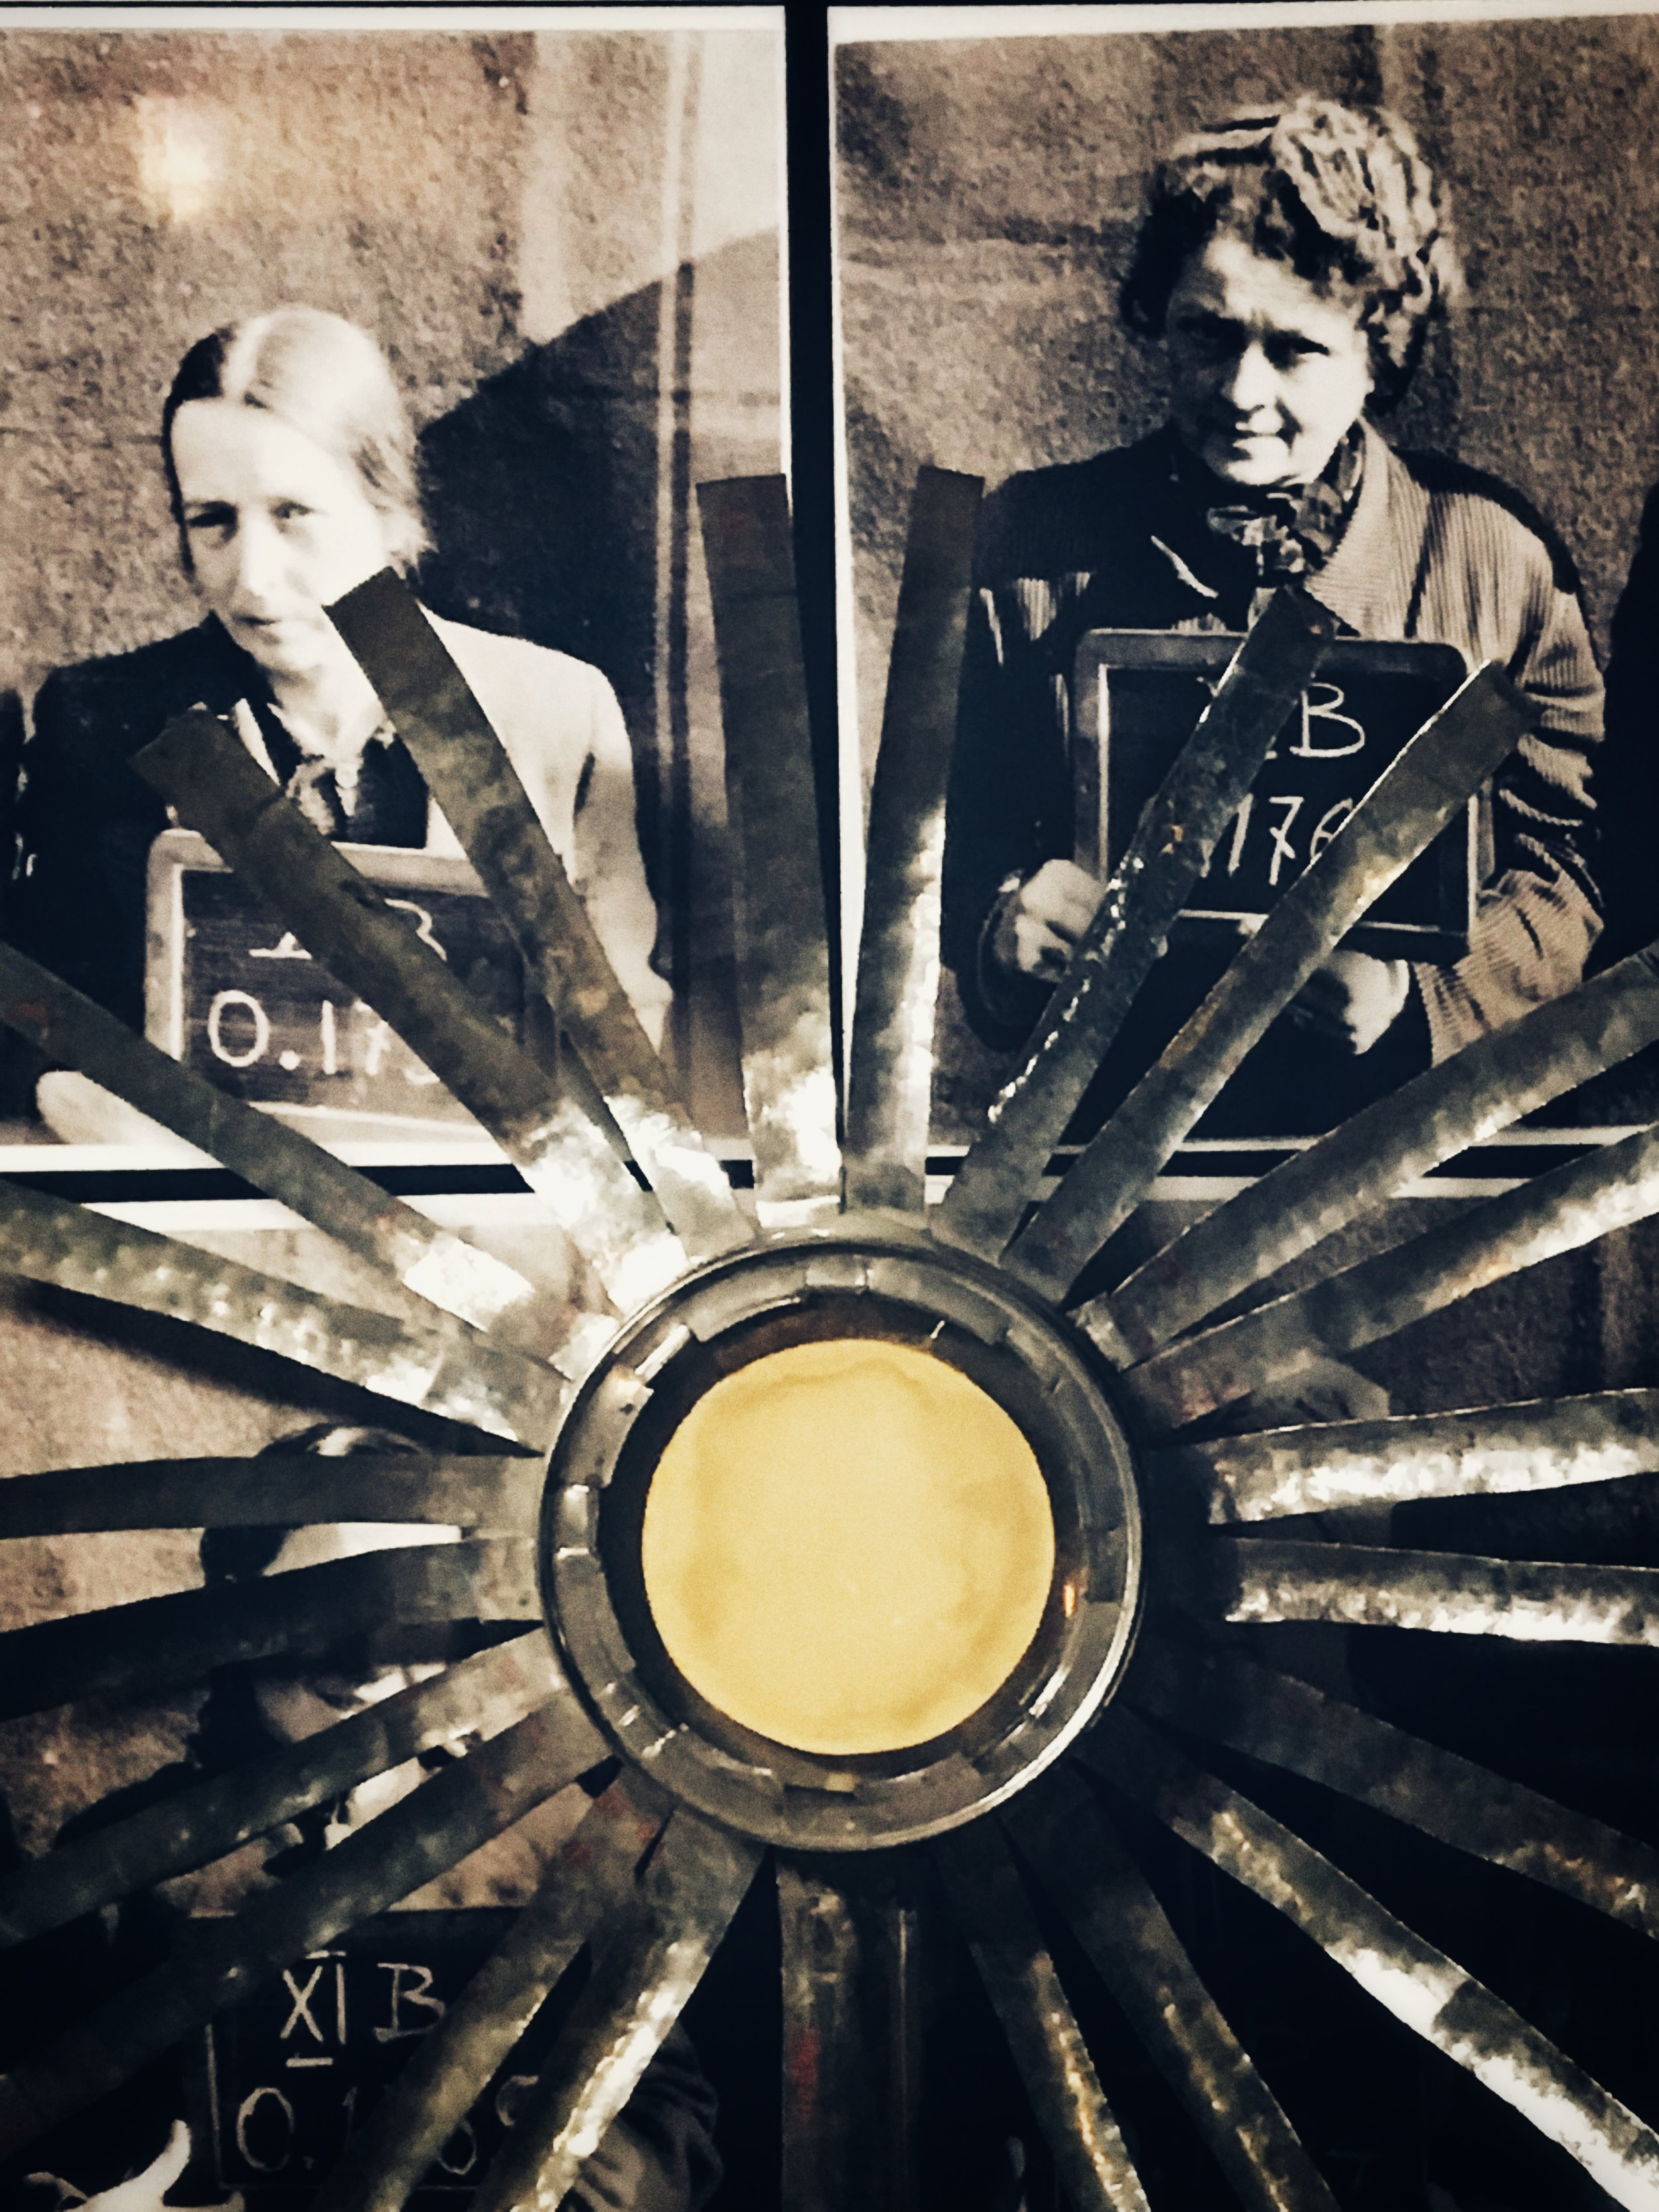 display in the warsaw uprising museum